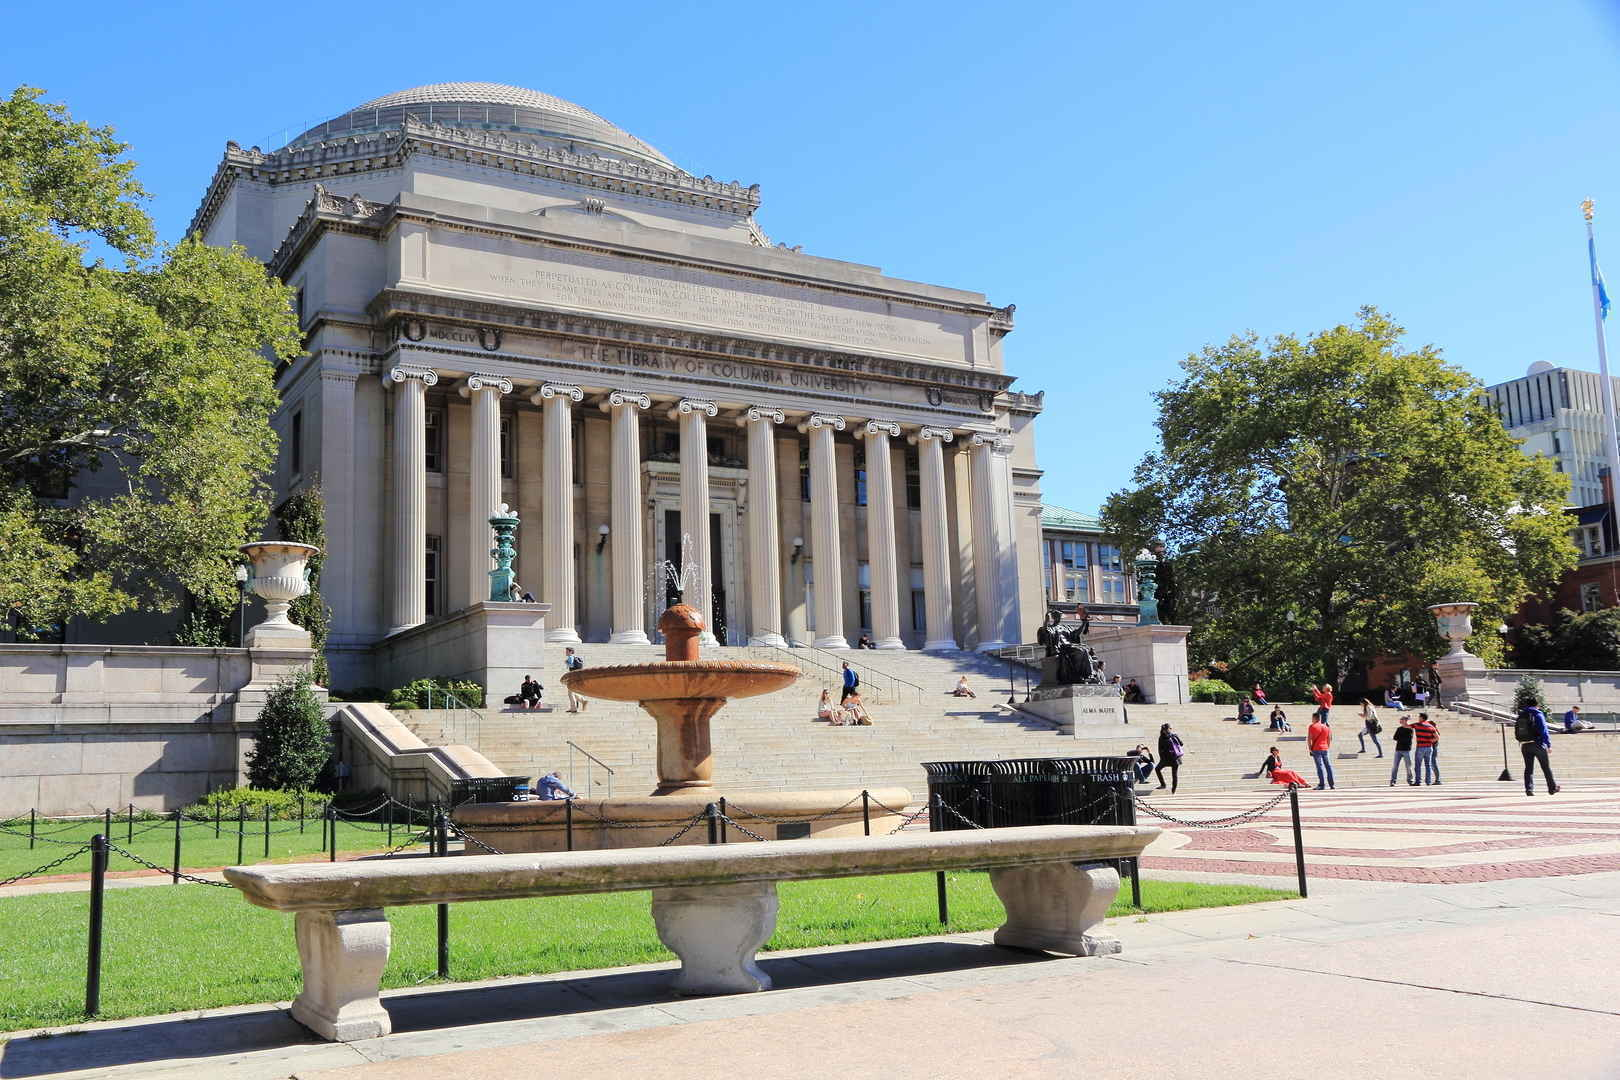 Columbia University buildings in Morningside Heights